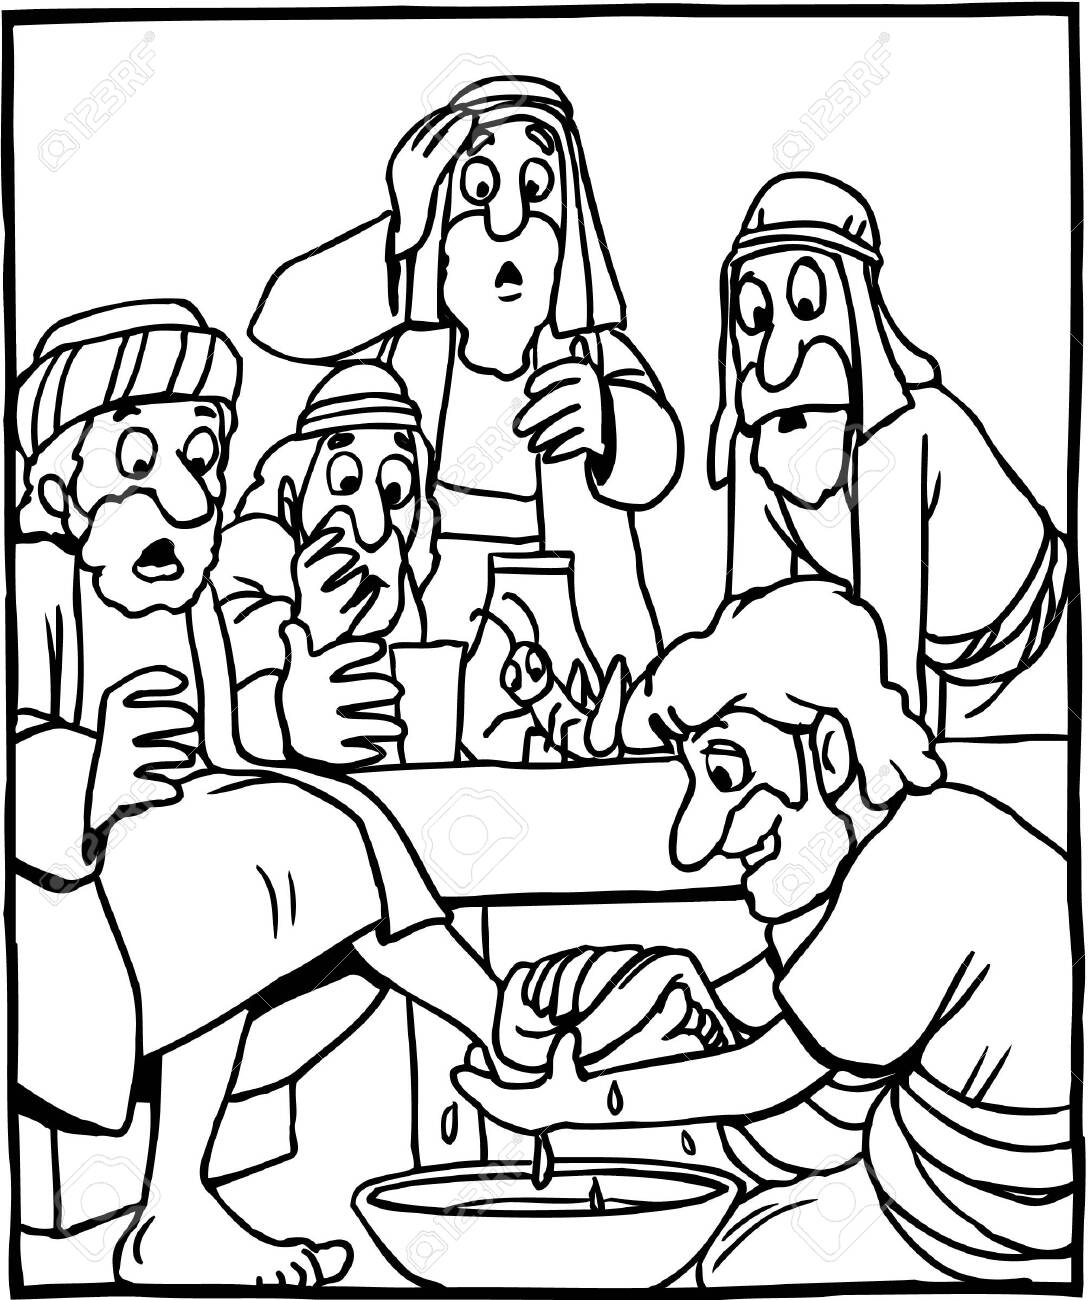 Jesus Gather With His Disciples Coloring Page : Coloring Sun | 1300x1088